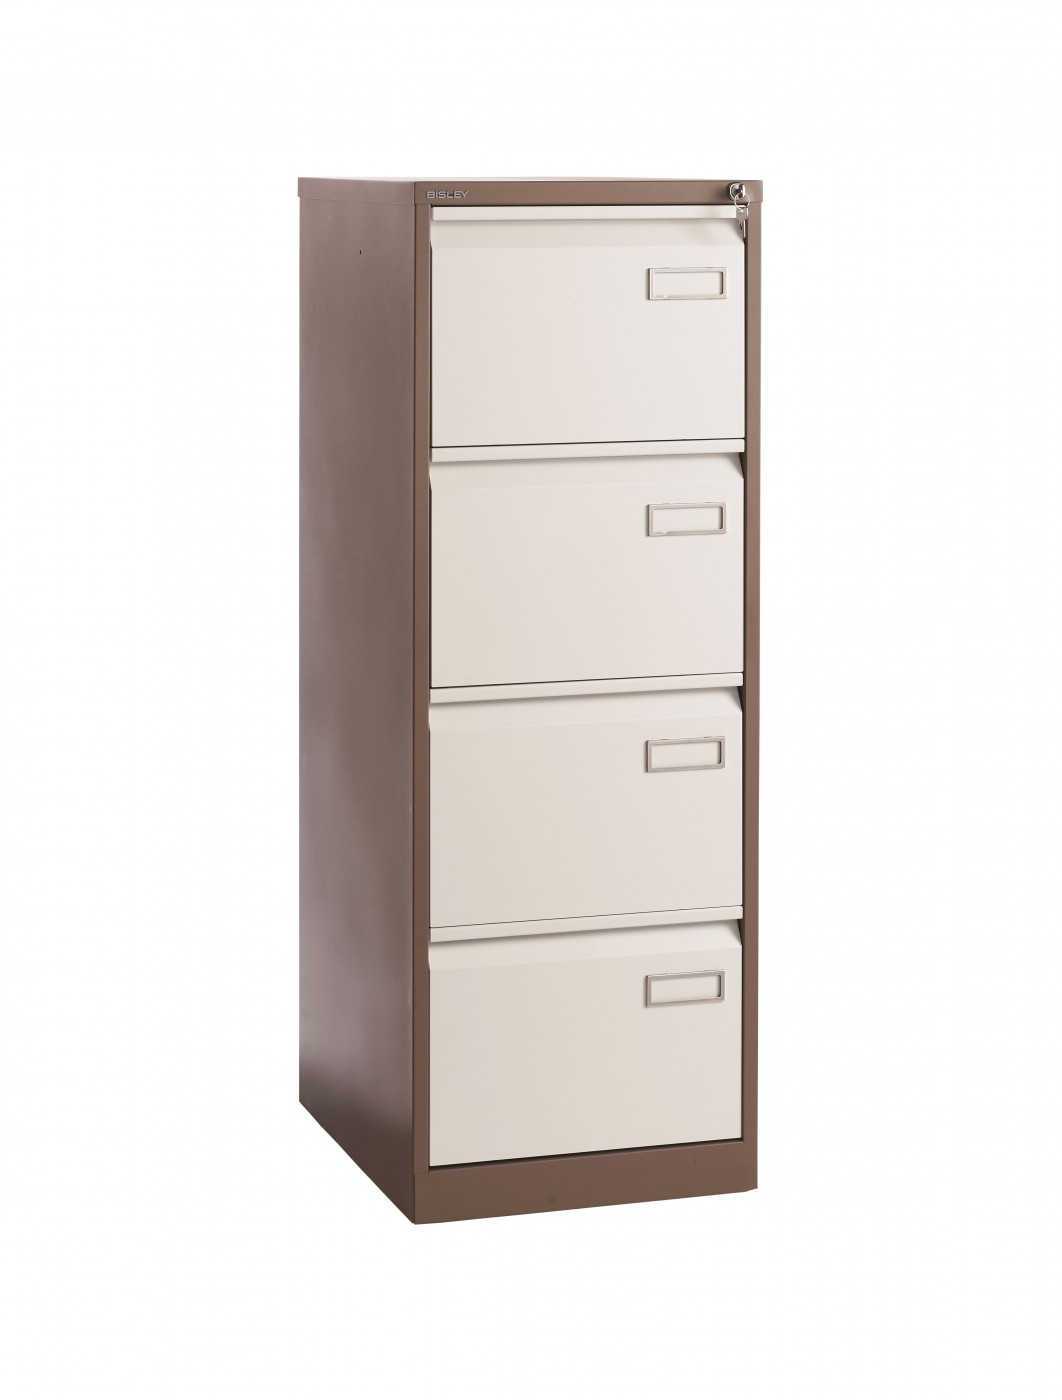 Bisley File Cabinet | Locking Two Drawer File Cabinet | 10 Drawer Filing Cabinet